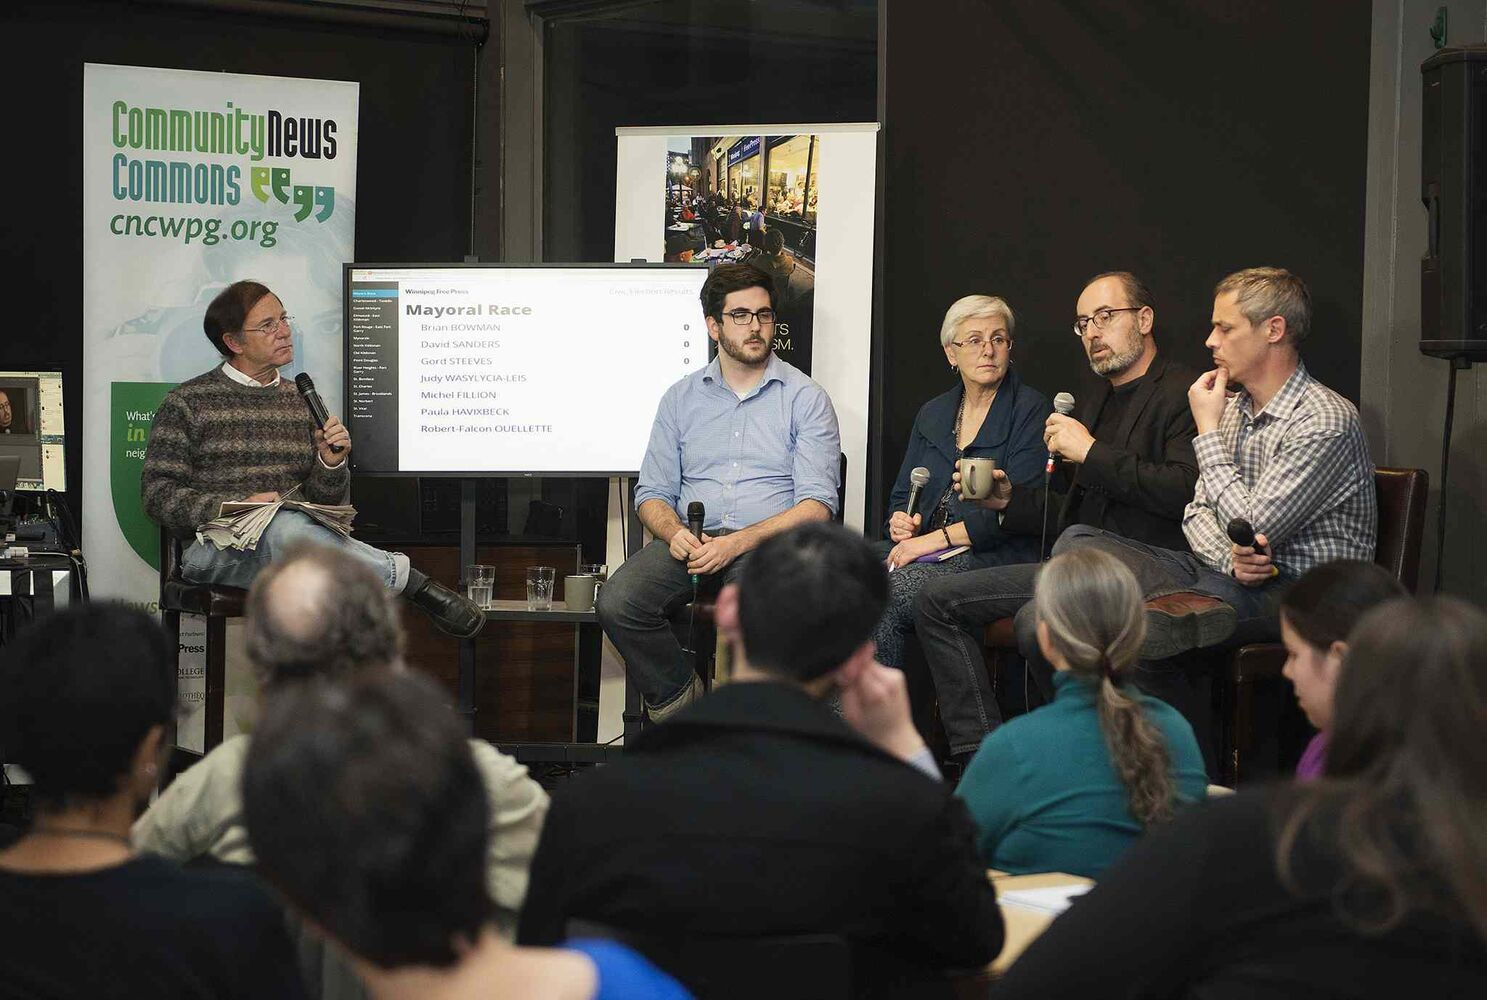 From left, Donald Benham, Zach Fleisher, Shannon Sampert, Jino Disastio, and James Turner participate in the community news commons civic elections panel at the News Café.  (Sarah Taylor / Winnipeg Free Press)